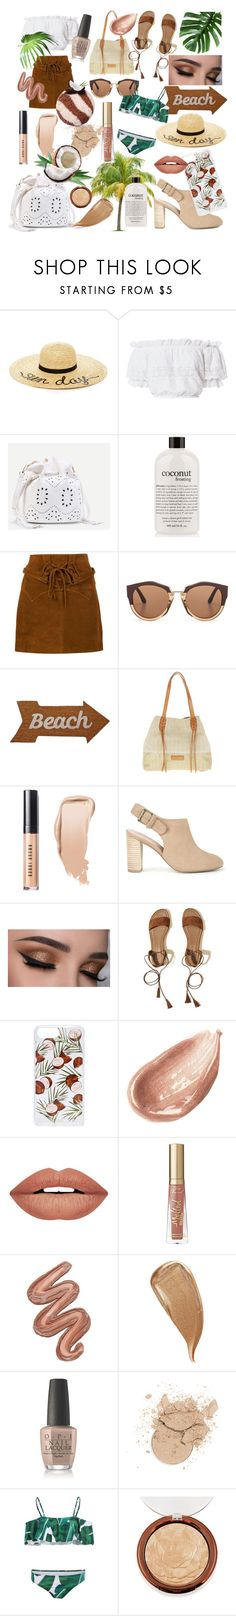 """""""summer style- coconut inspired"""" by que2001 ❤ liked on Polyvore featuring Eugenia Kim, LoveShackFancy, philosophy, Faith Connexion, Marni, Mud Pie, Liebeskind, Bobbi Brown Cosmetics, Sole Society and Hollister Co."""